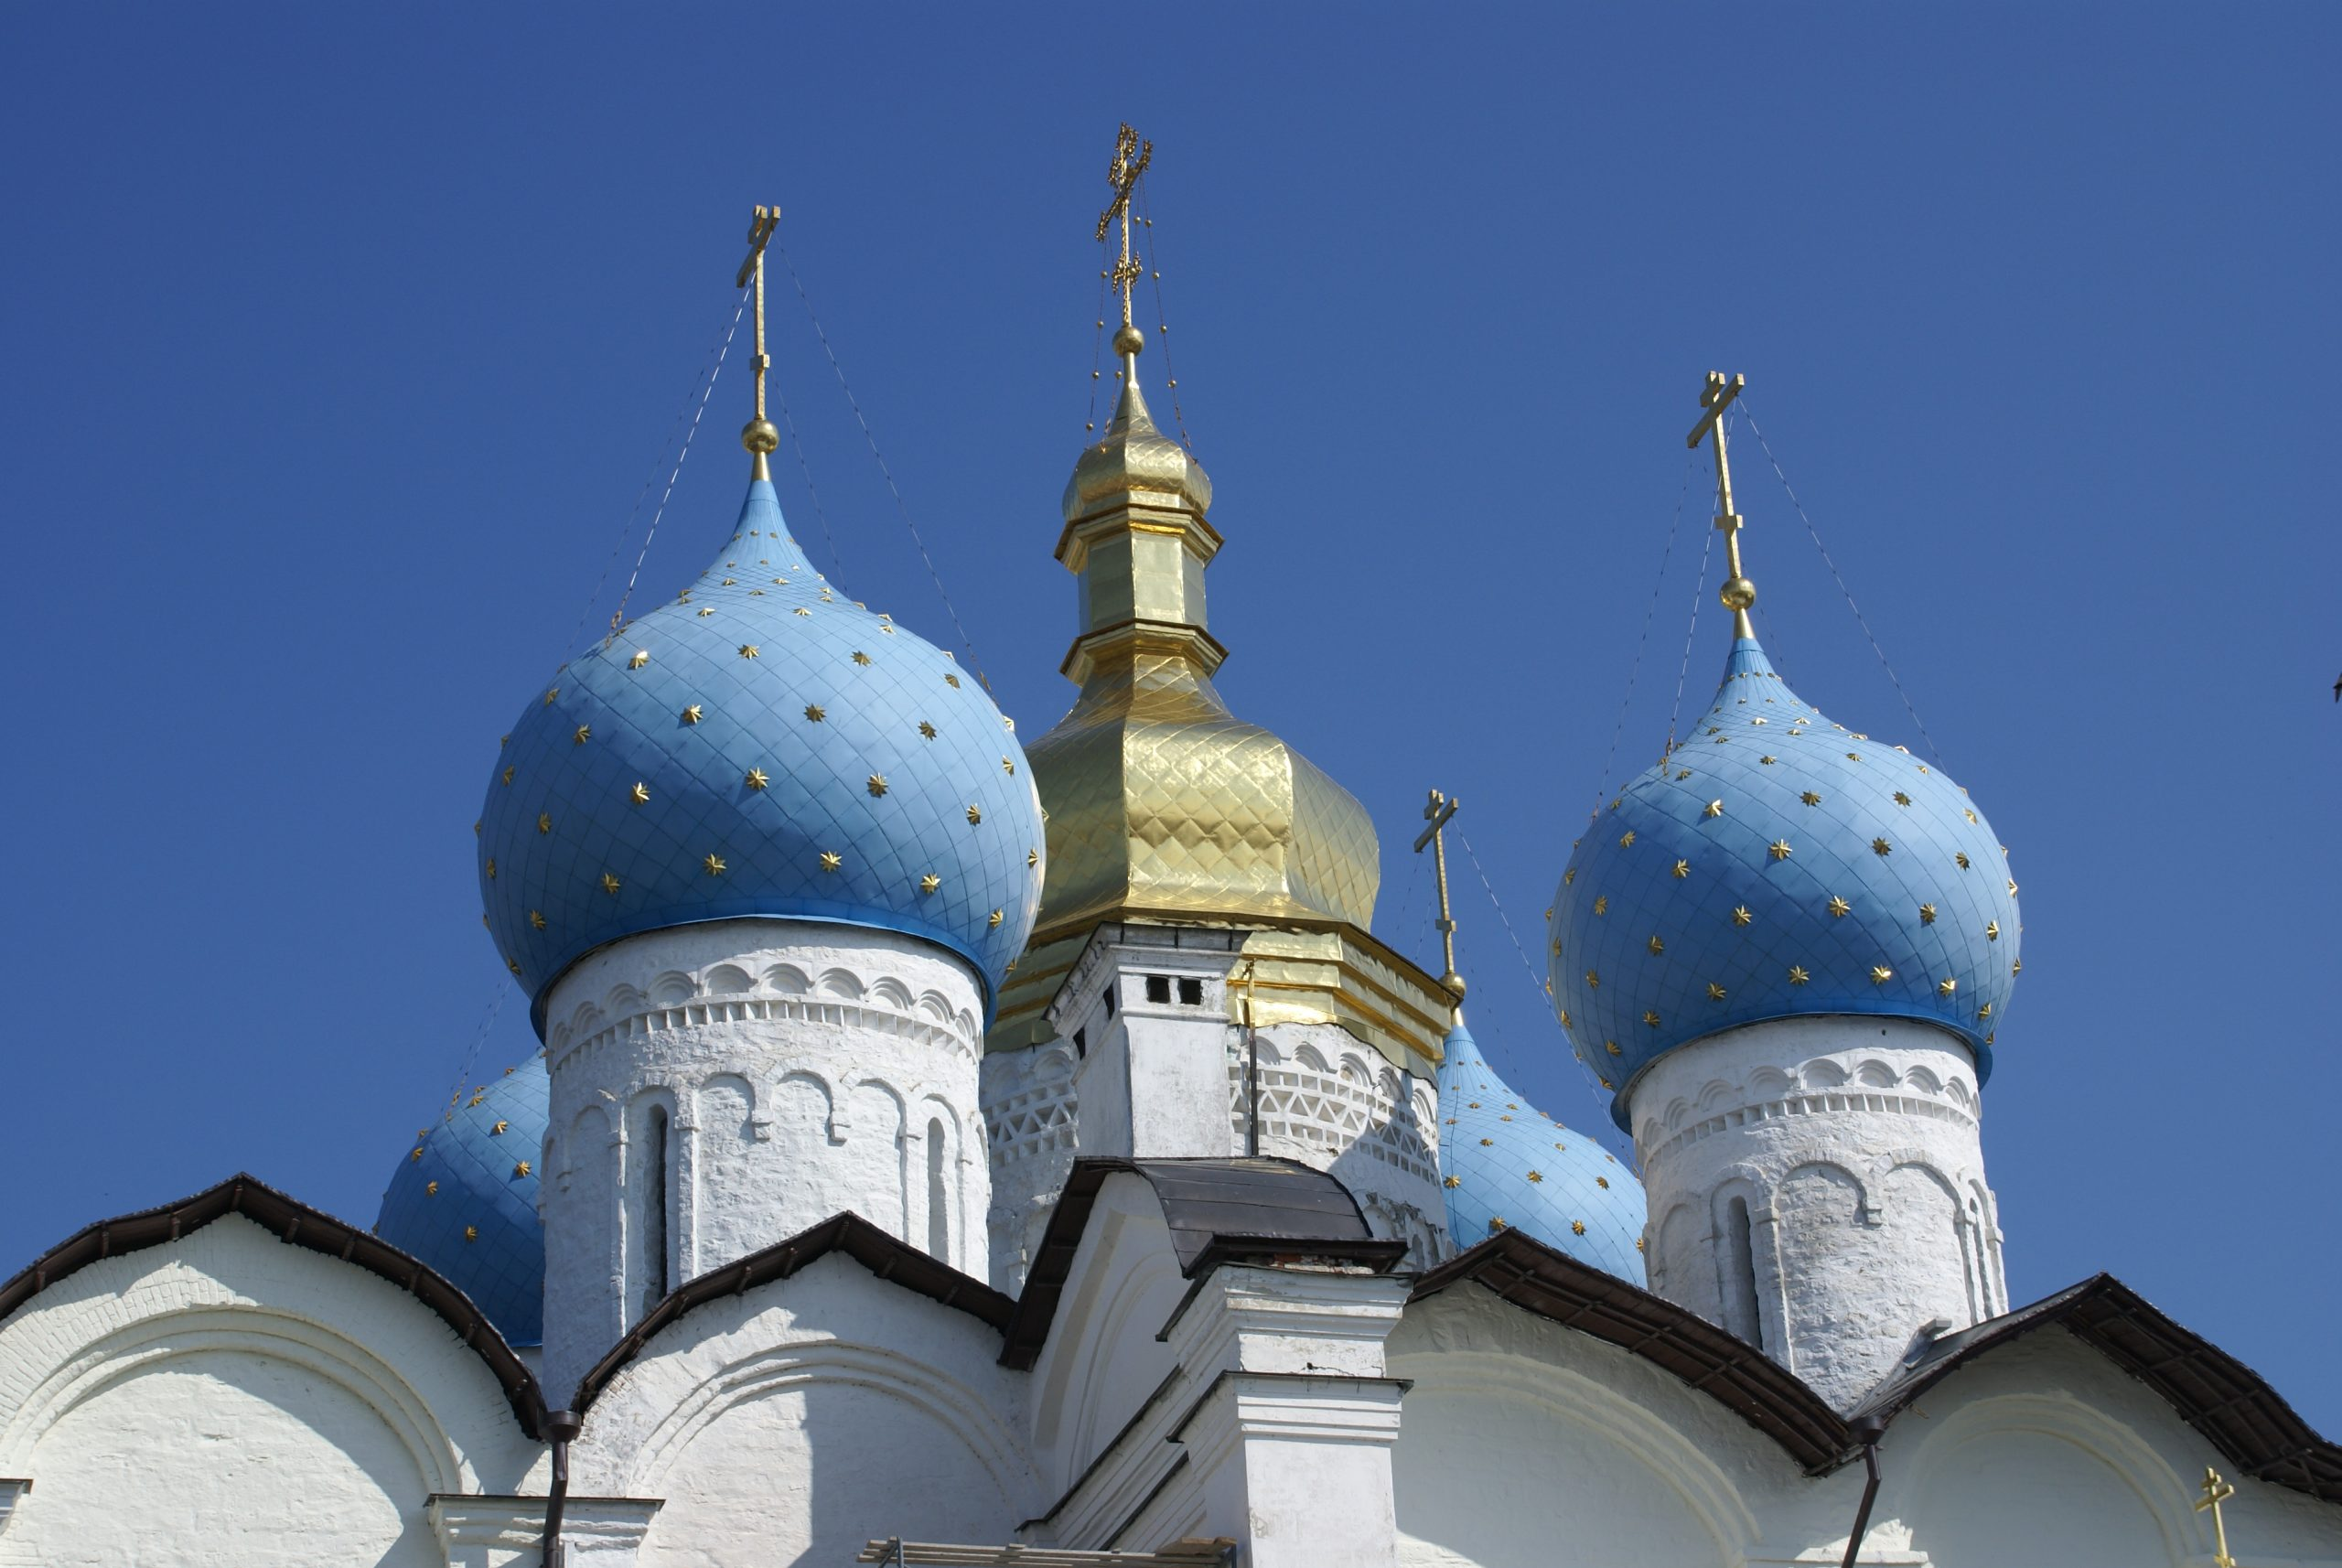 The domes of Novodevichy Convent in Moscow, Russia. Photo credit: Joanna Millick